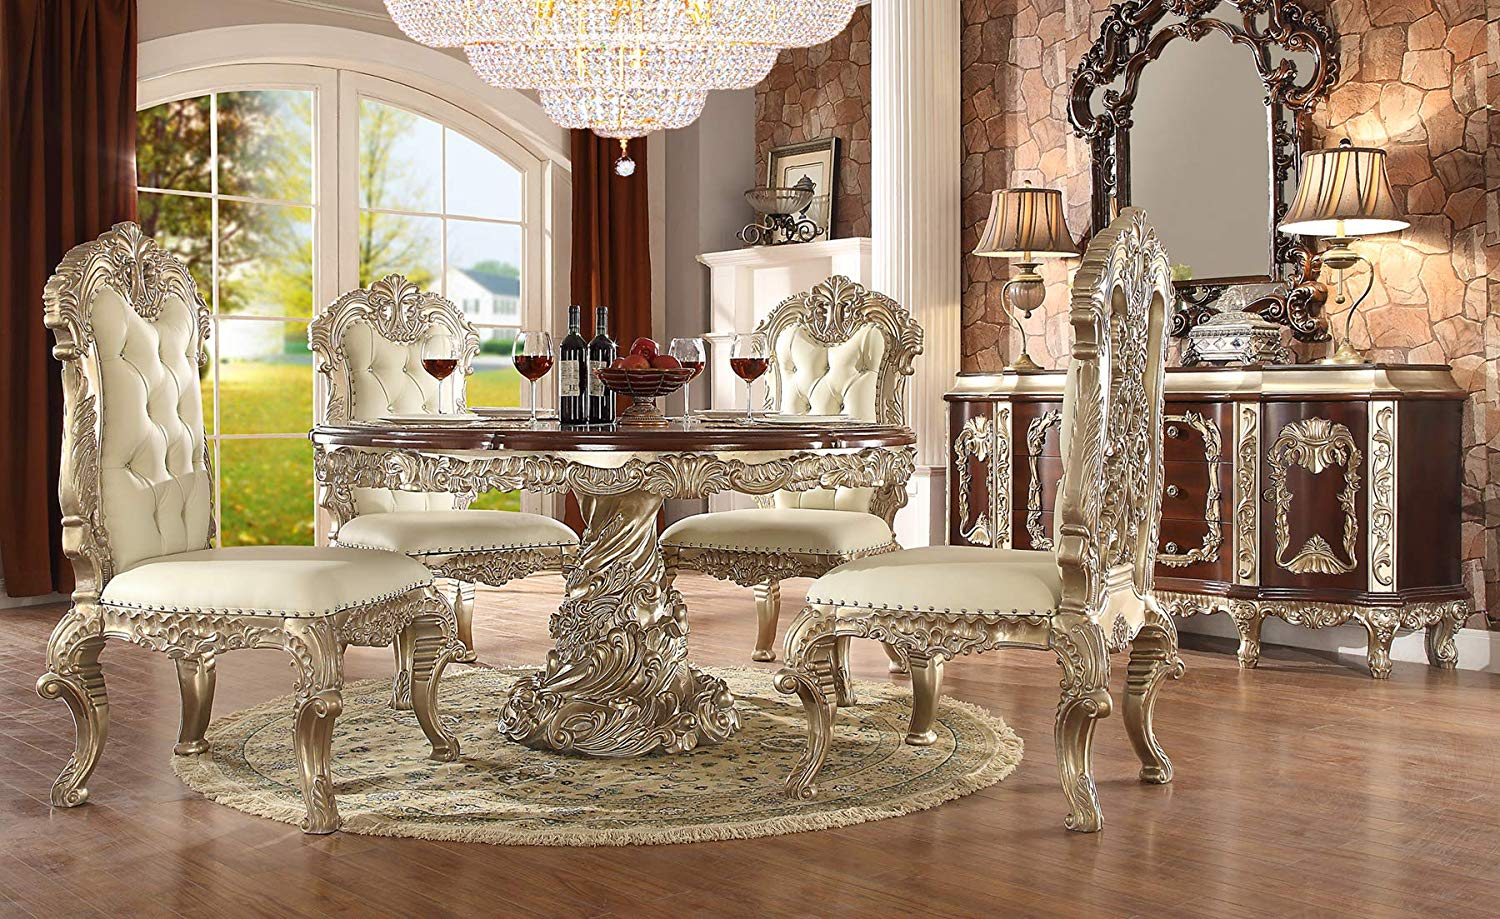 Crystal chandelier and beautiful white dining set